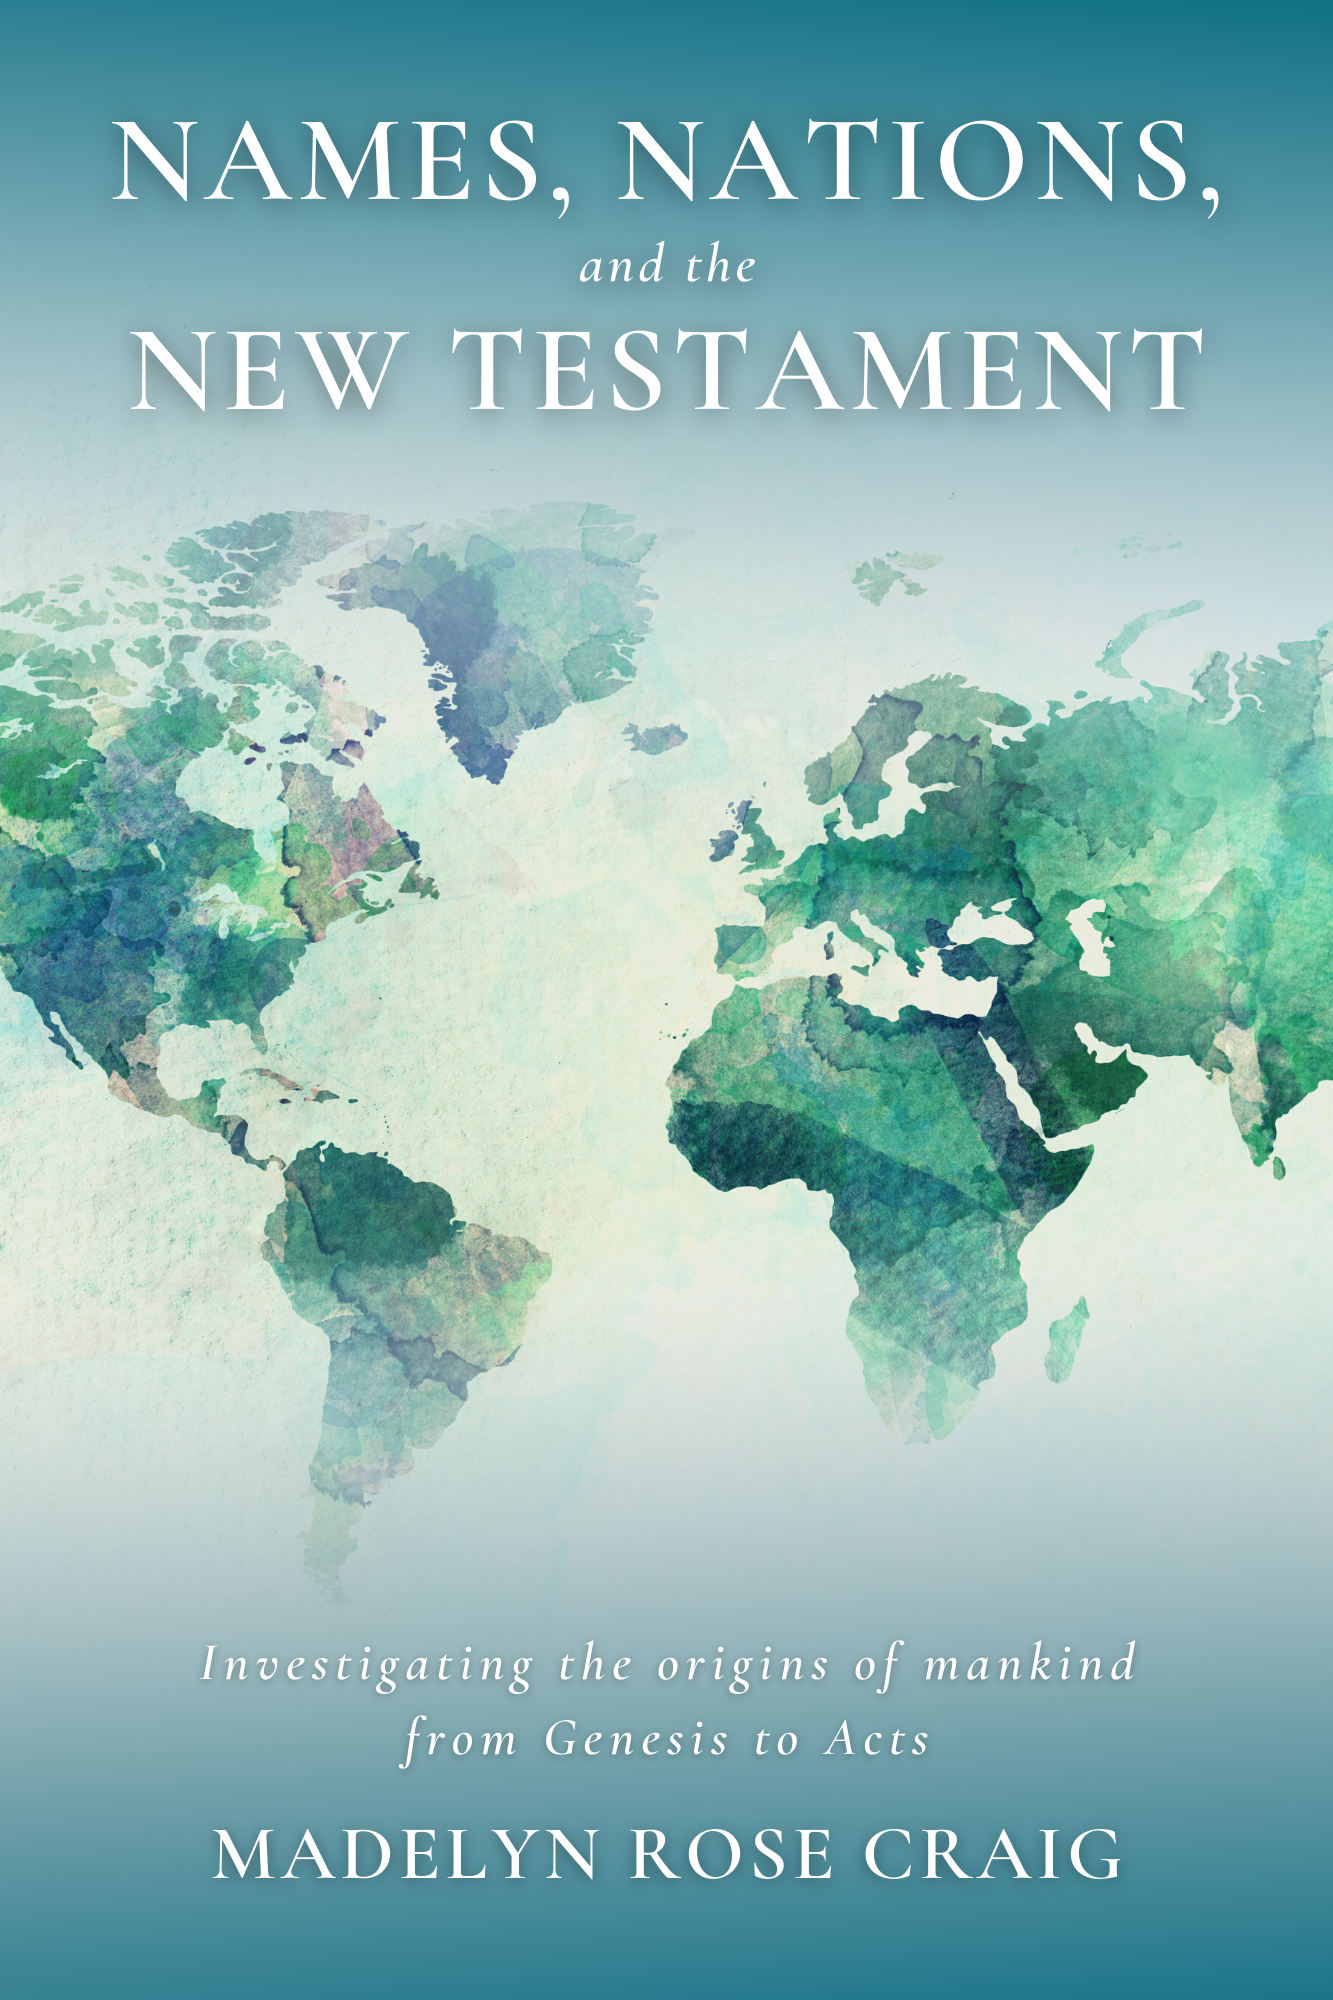 Names, Nations, and the New Testament